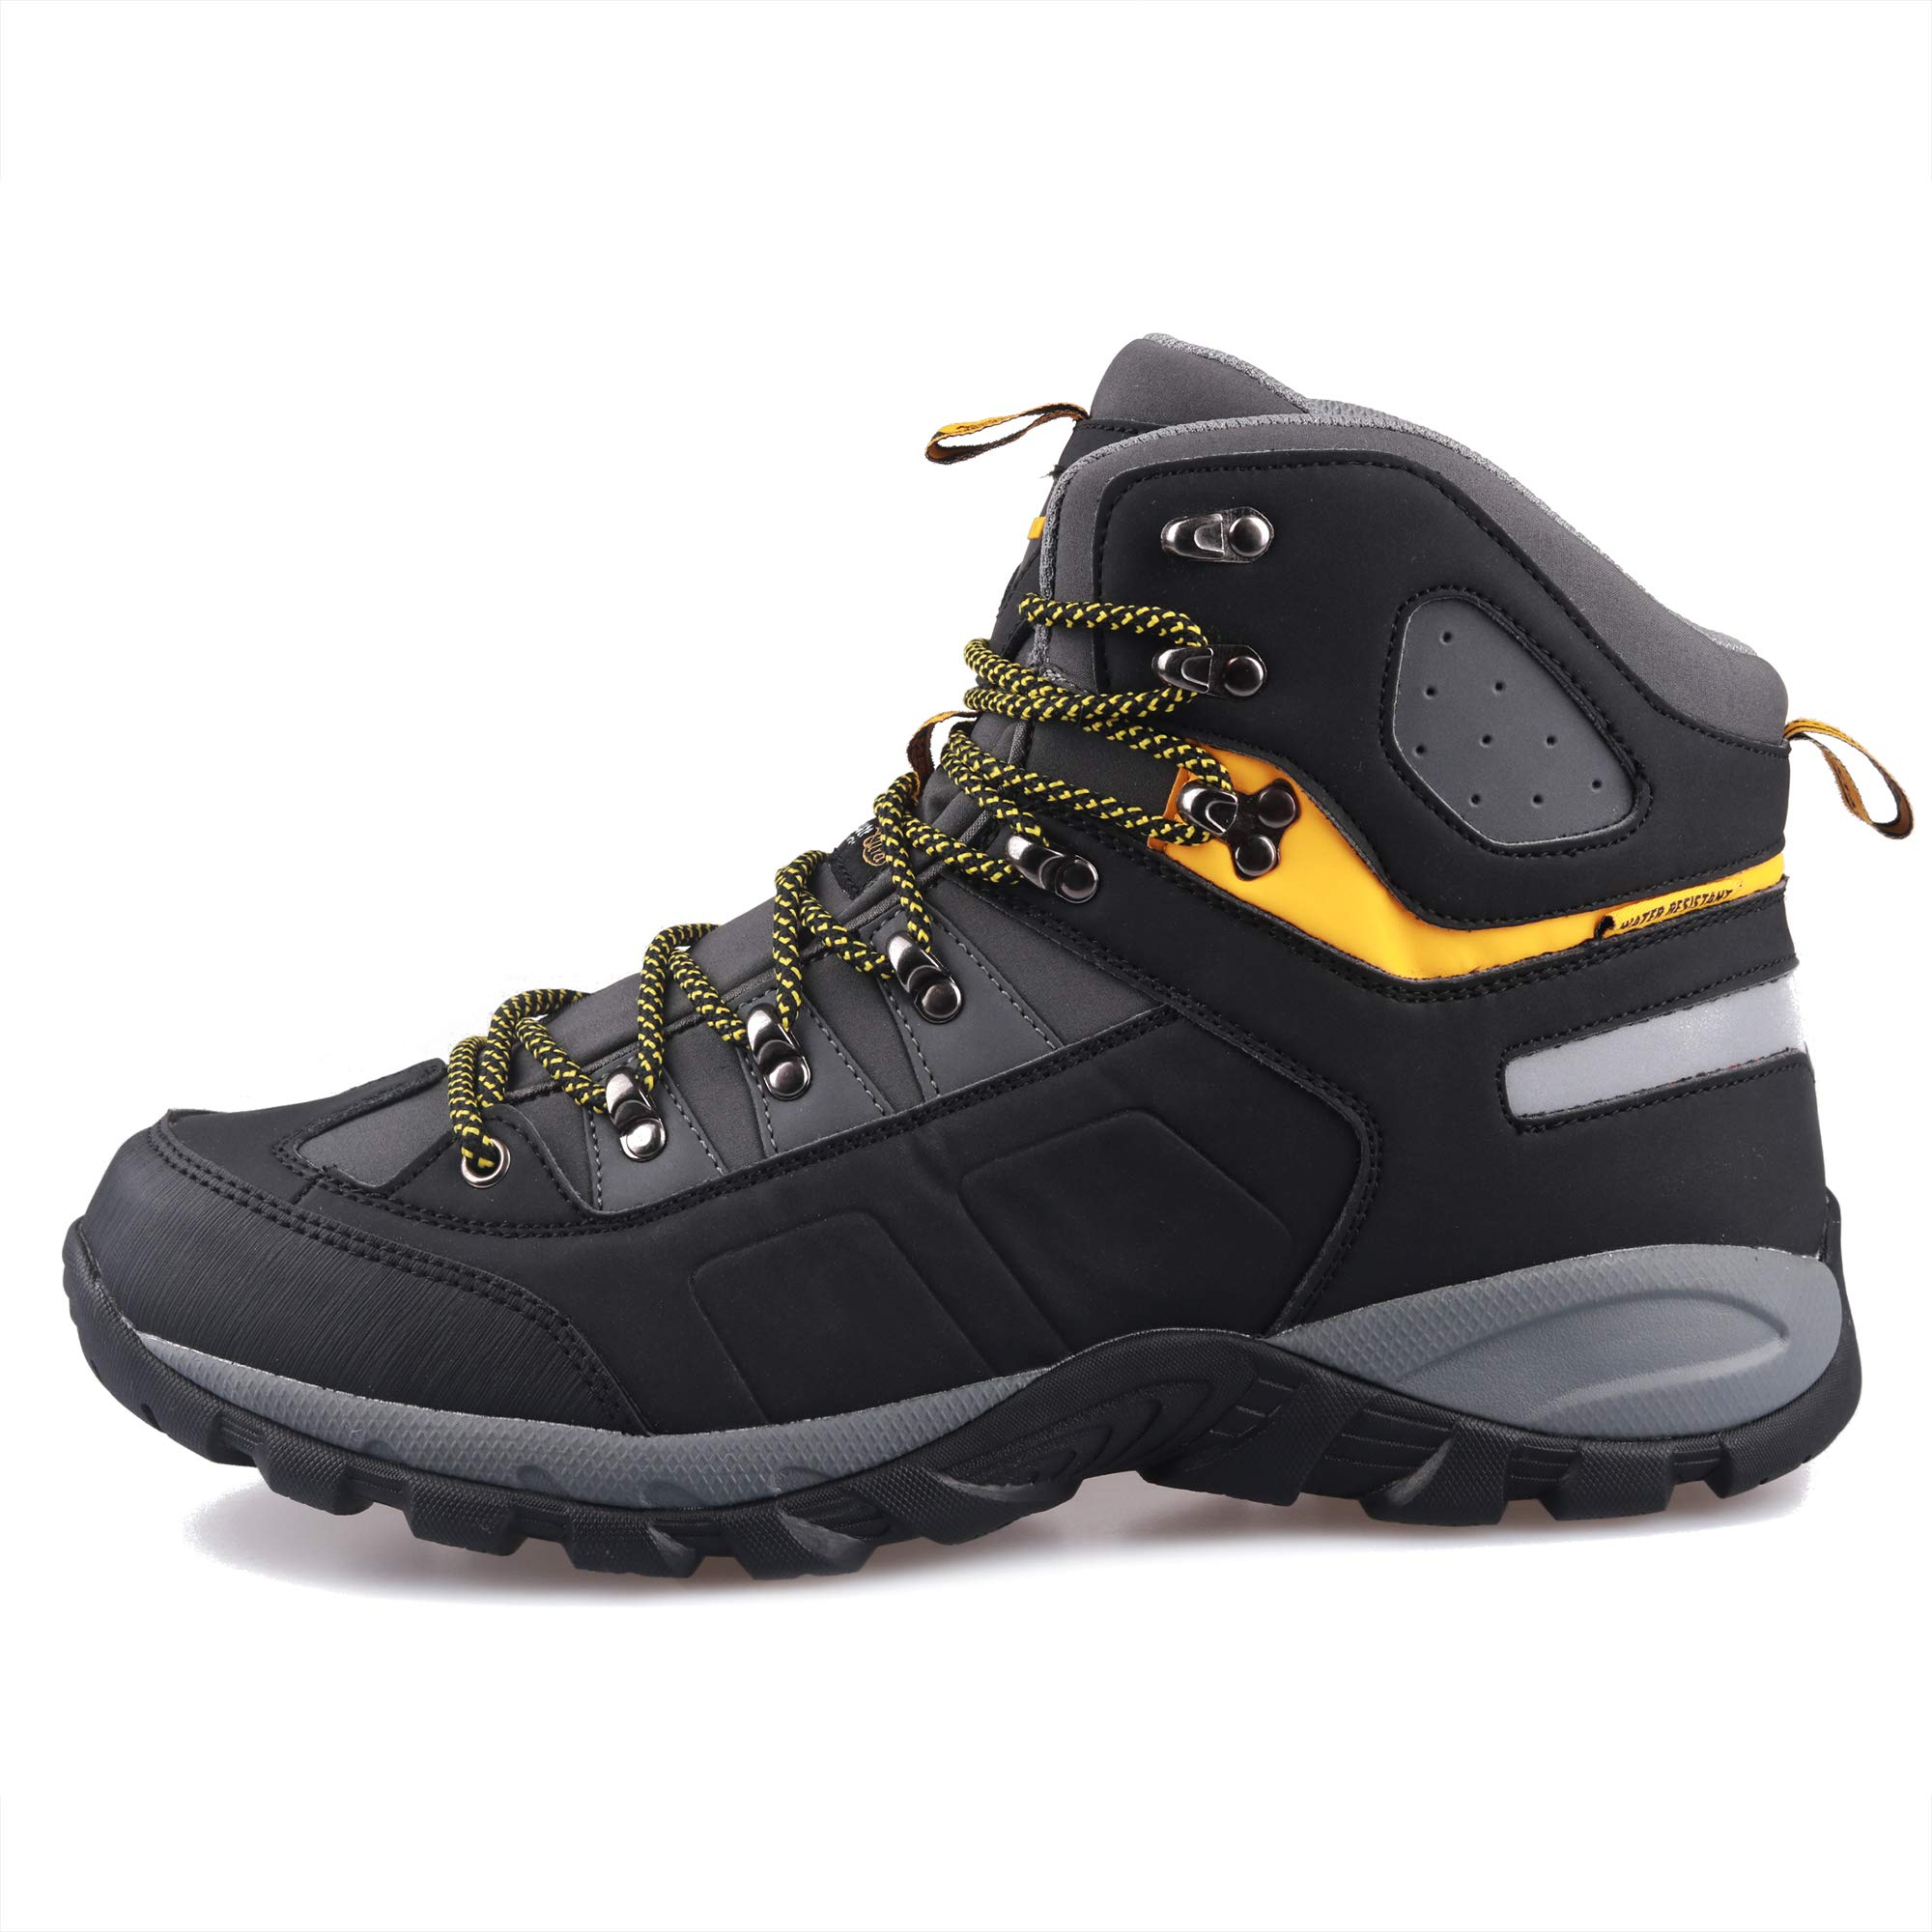 GRITION Men Hiking Boots Waterproof High Top Walking Non Slip Soft Shell Trekking Shoes Black/Yellow by GRITION (Image #2)